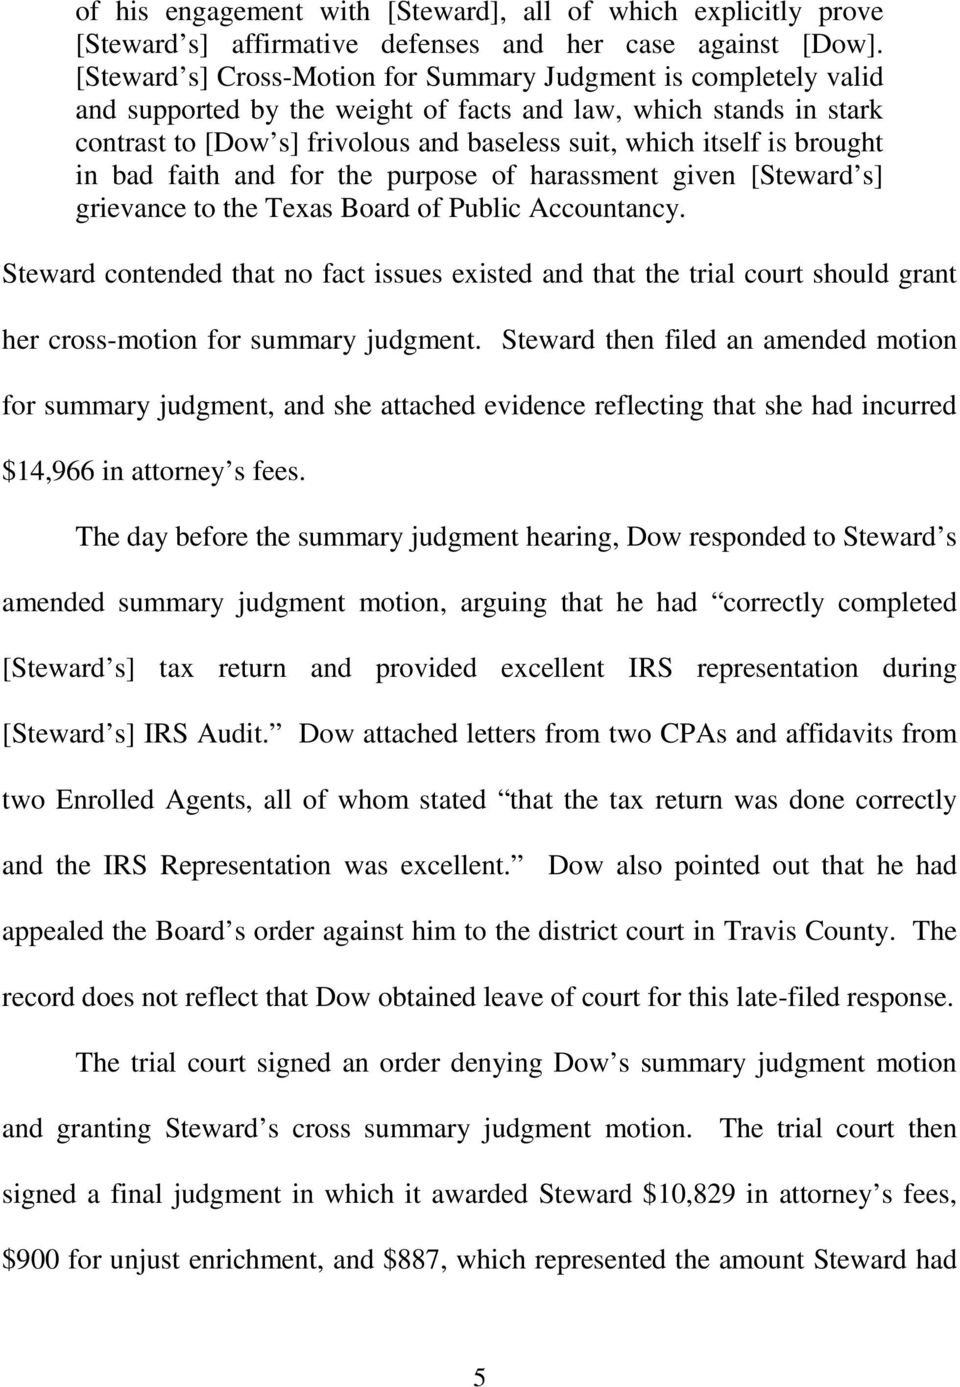 brought in bad faith and for the purpose of harassment given [Steward s] grievance to the Texas Board of Public Accountancy.